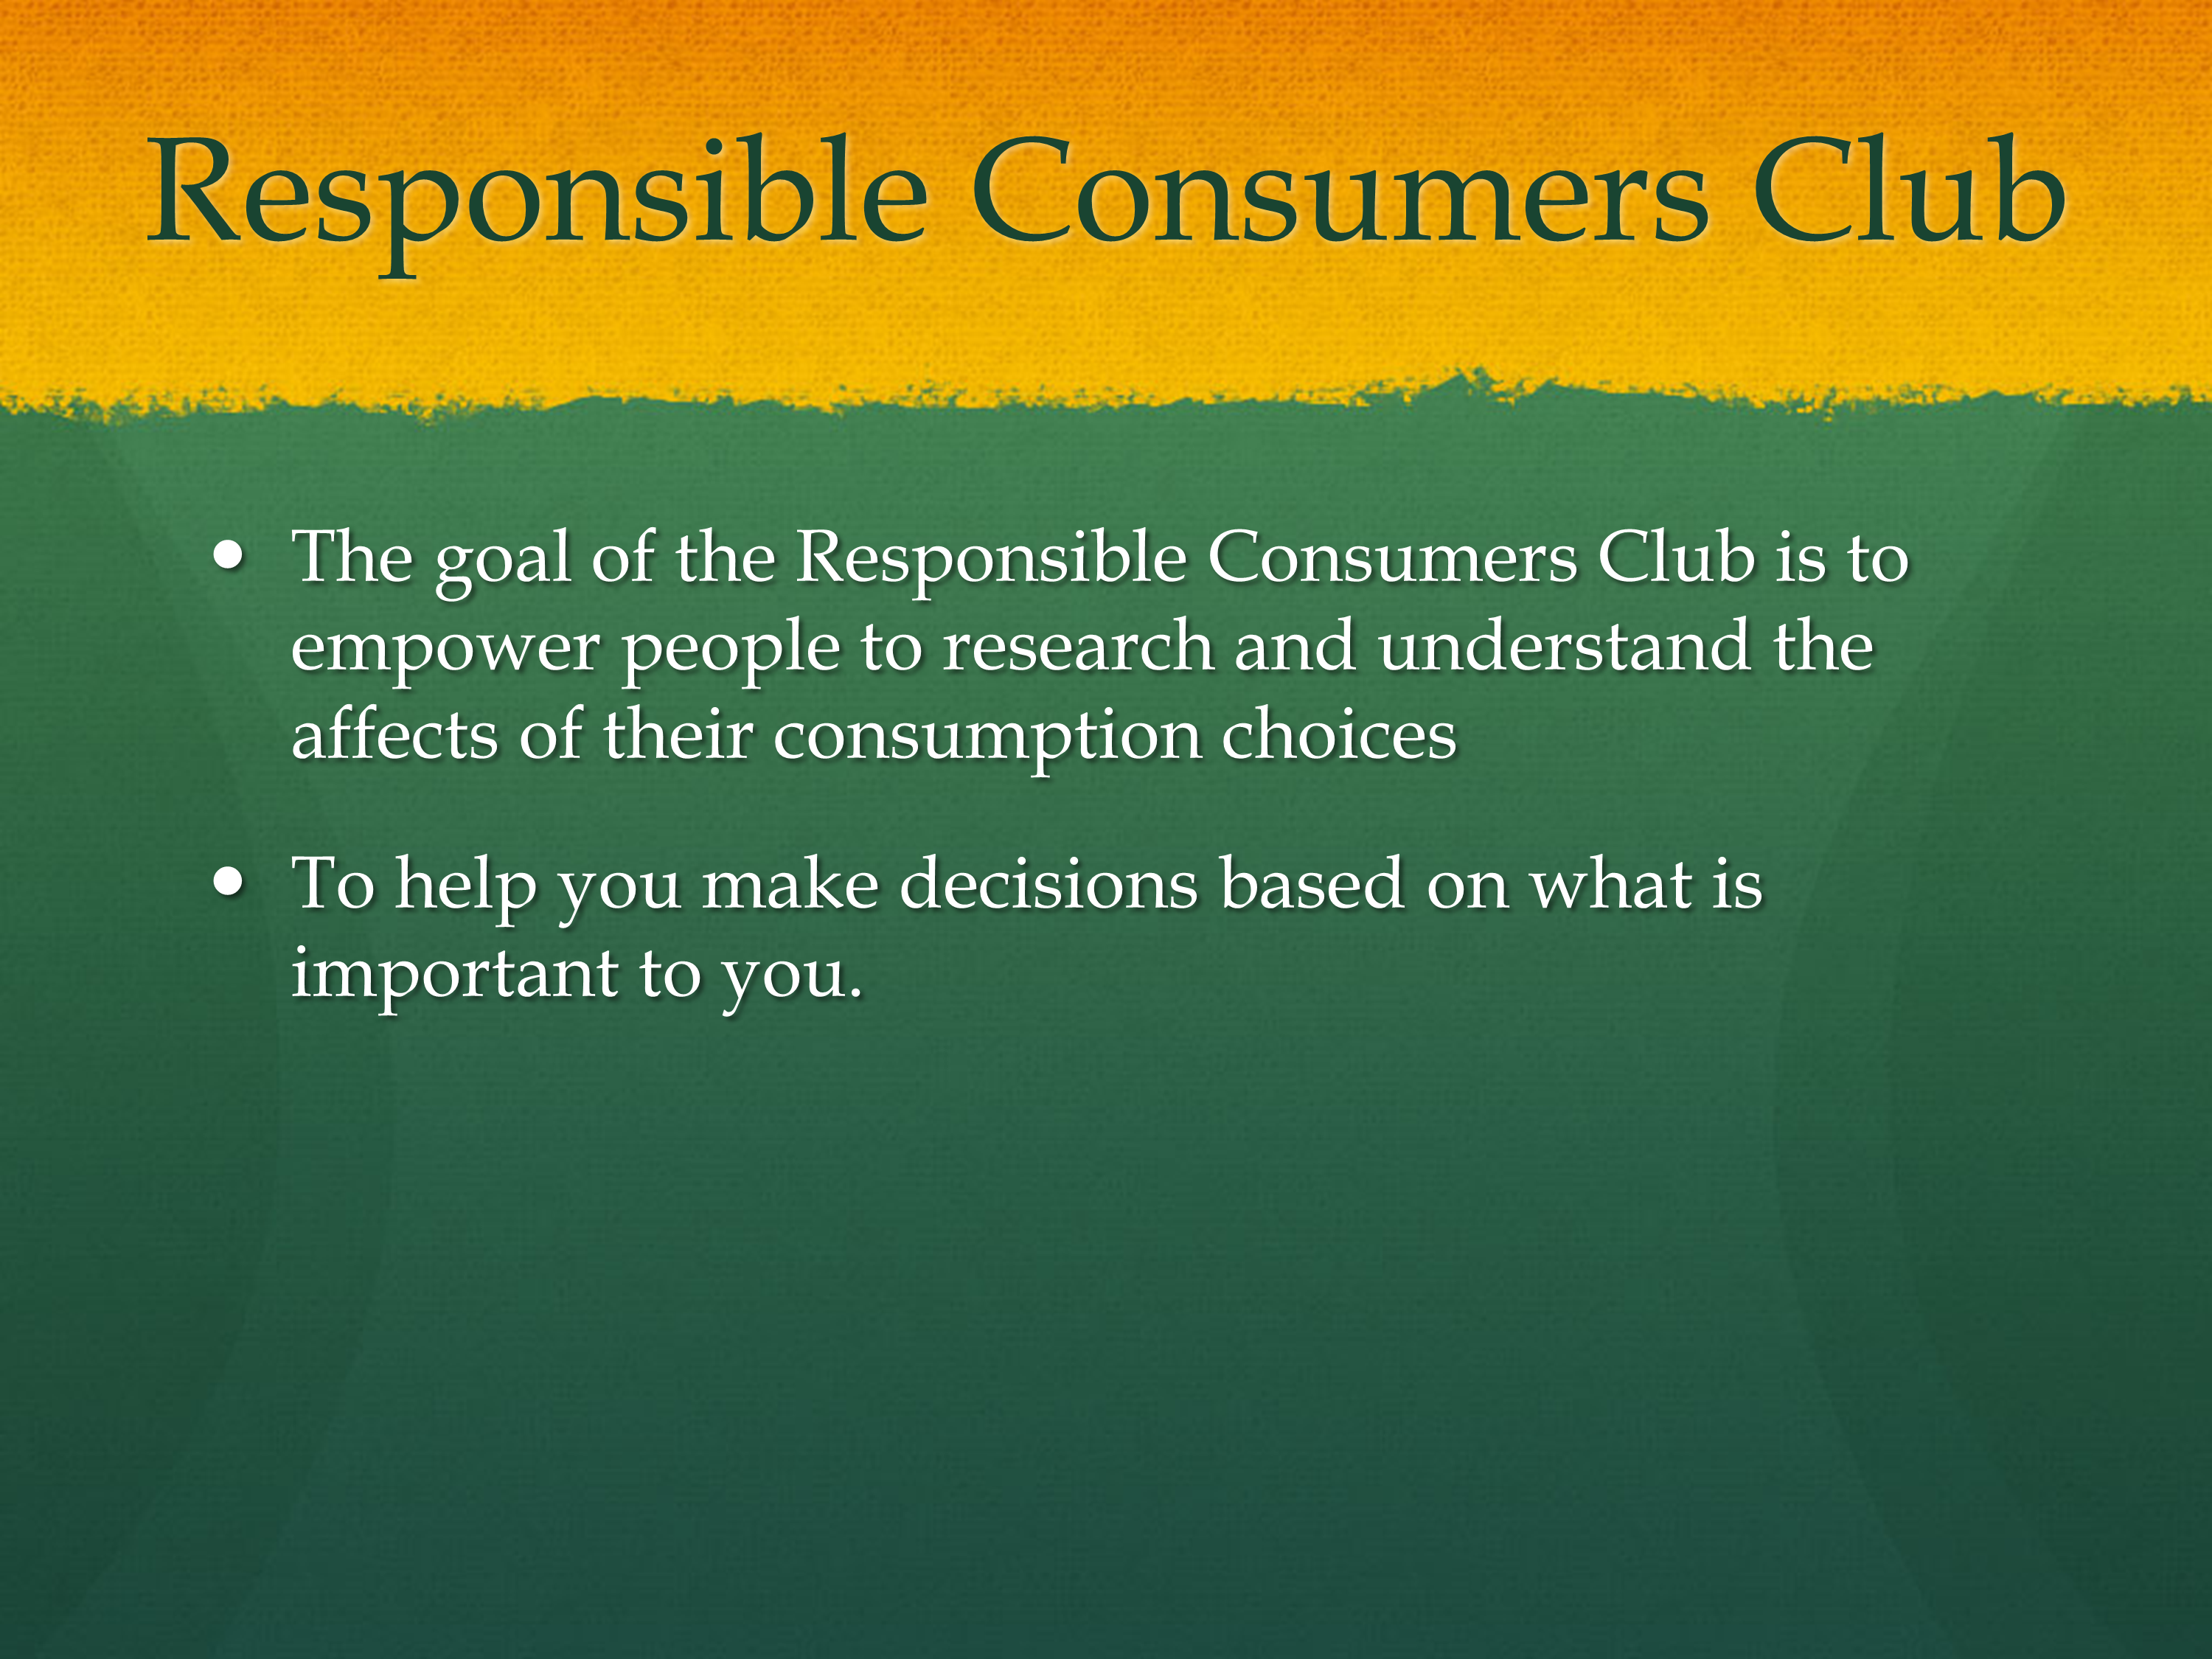 Responsible Consumers Club Intro.pptx